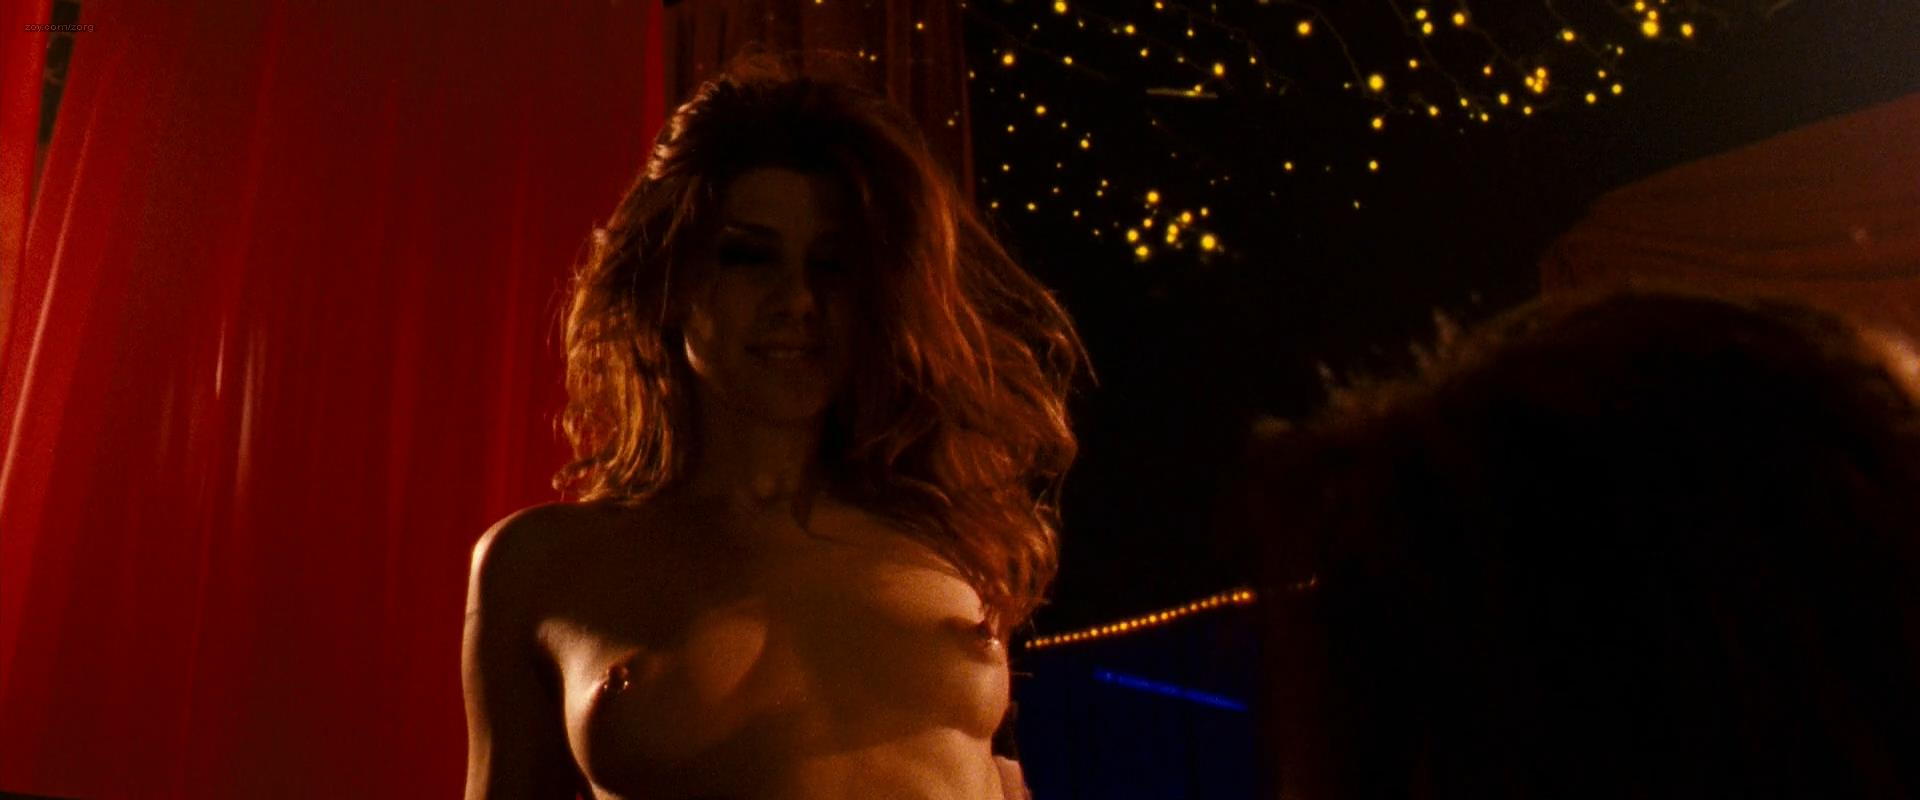 Marisa Tomei Nude Topless As Stripper And Andrea Langi -2657